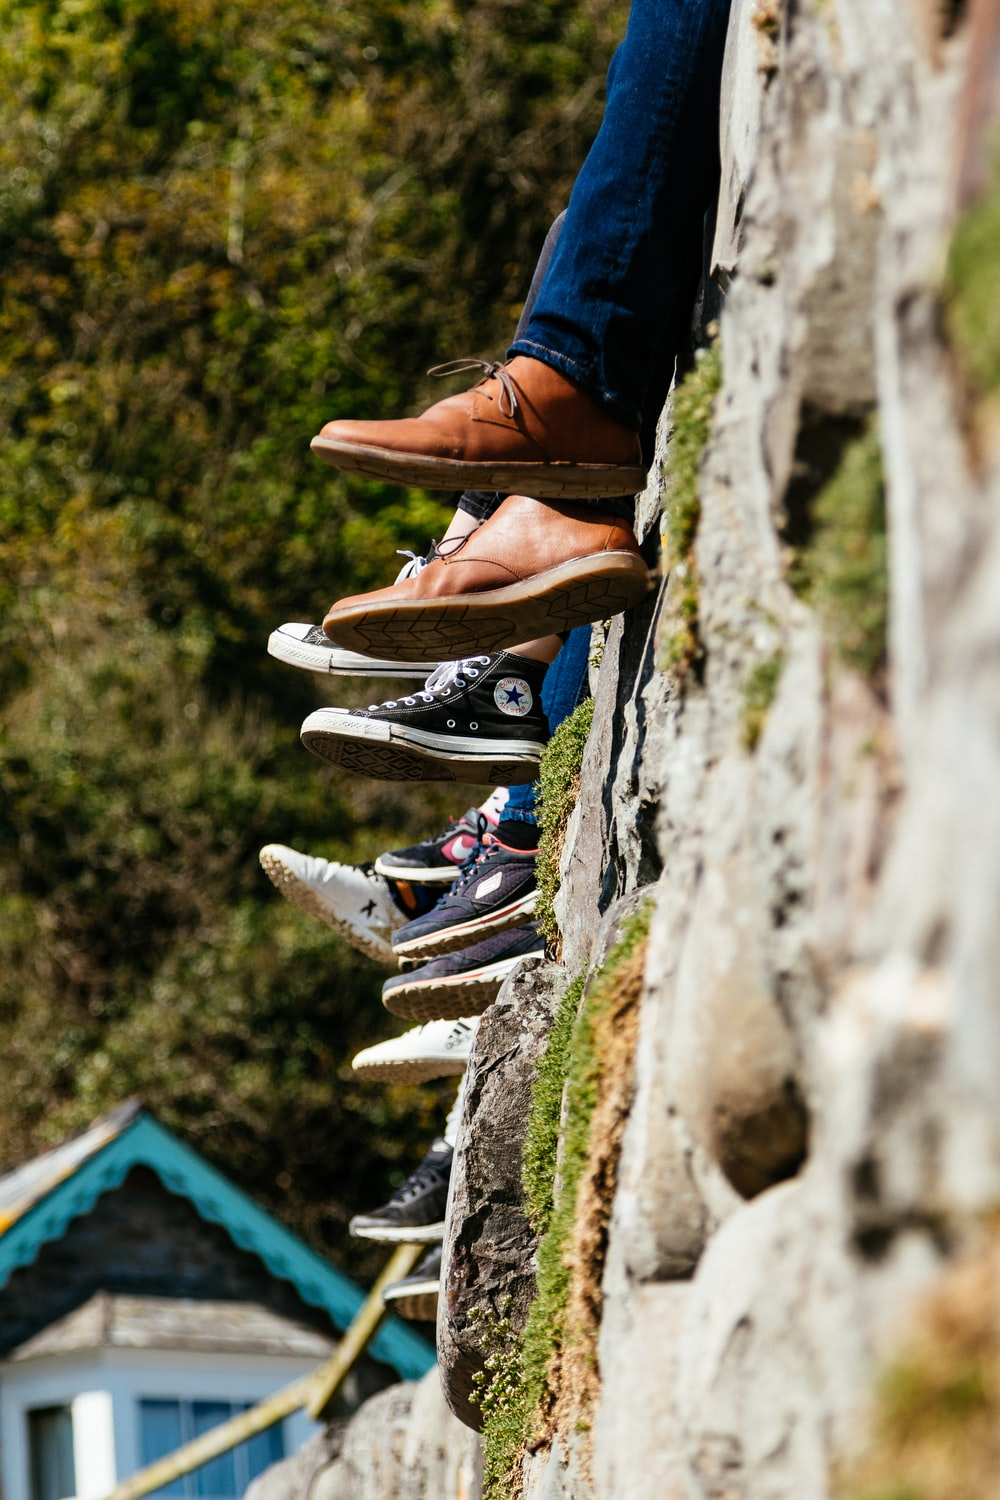 tilt-shift photography of shoes